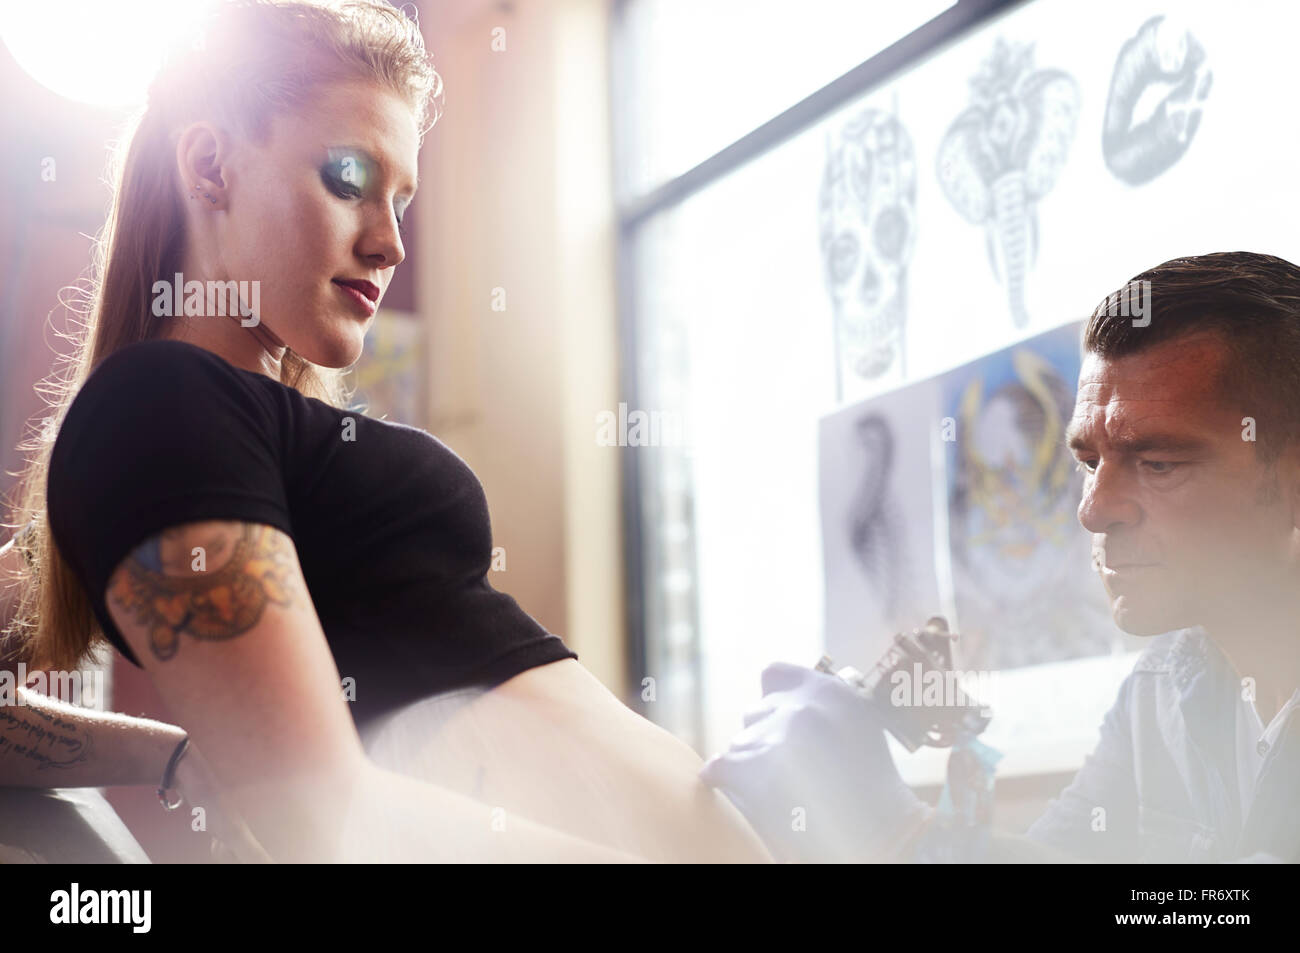 Tattoo artist tattooing woman's stomach - Stock Image